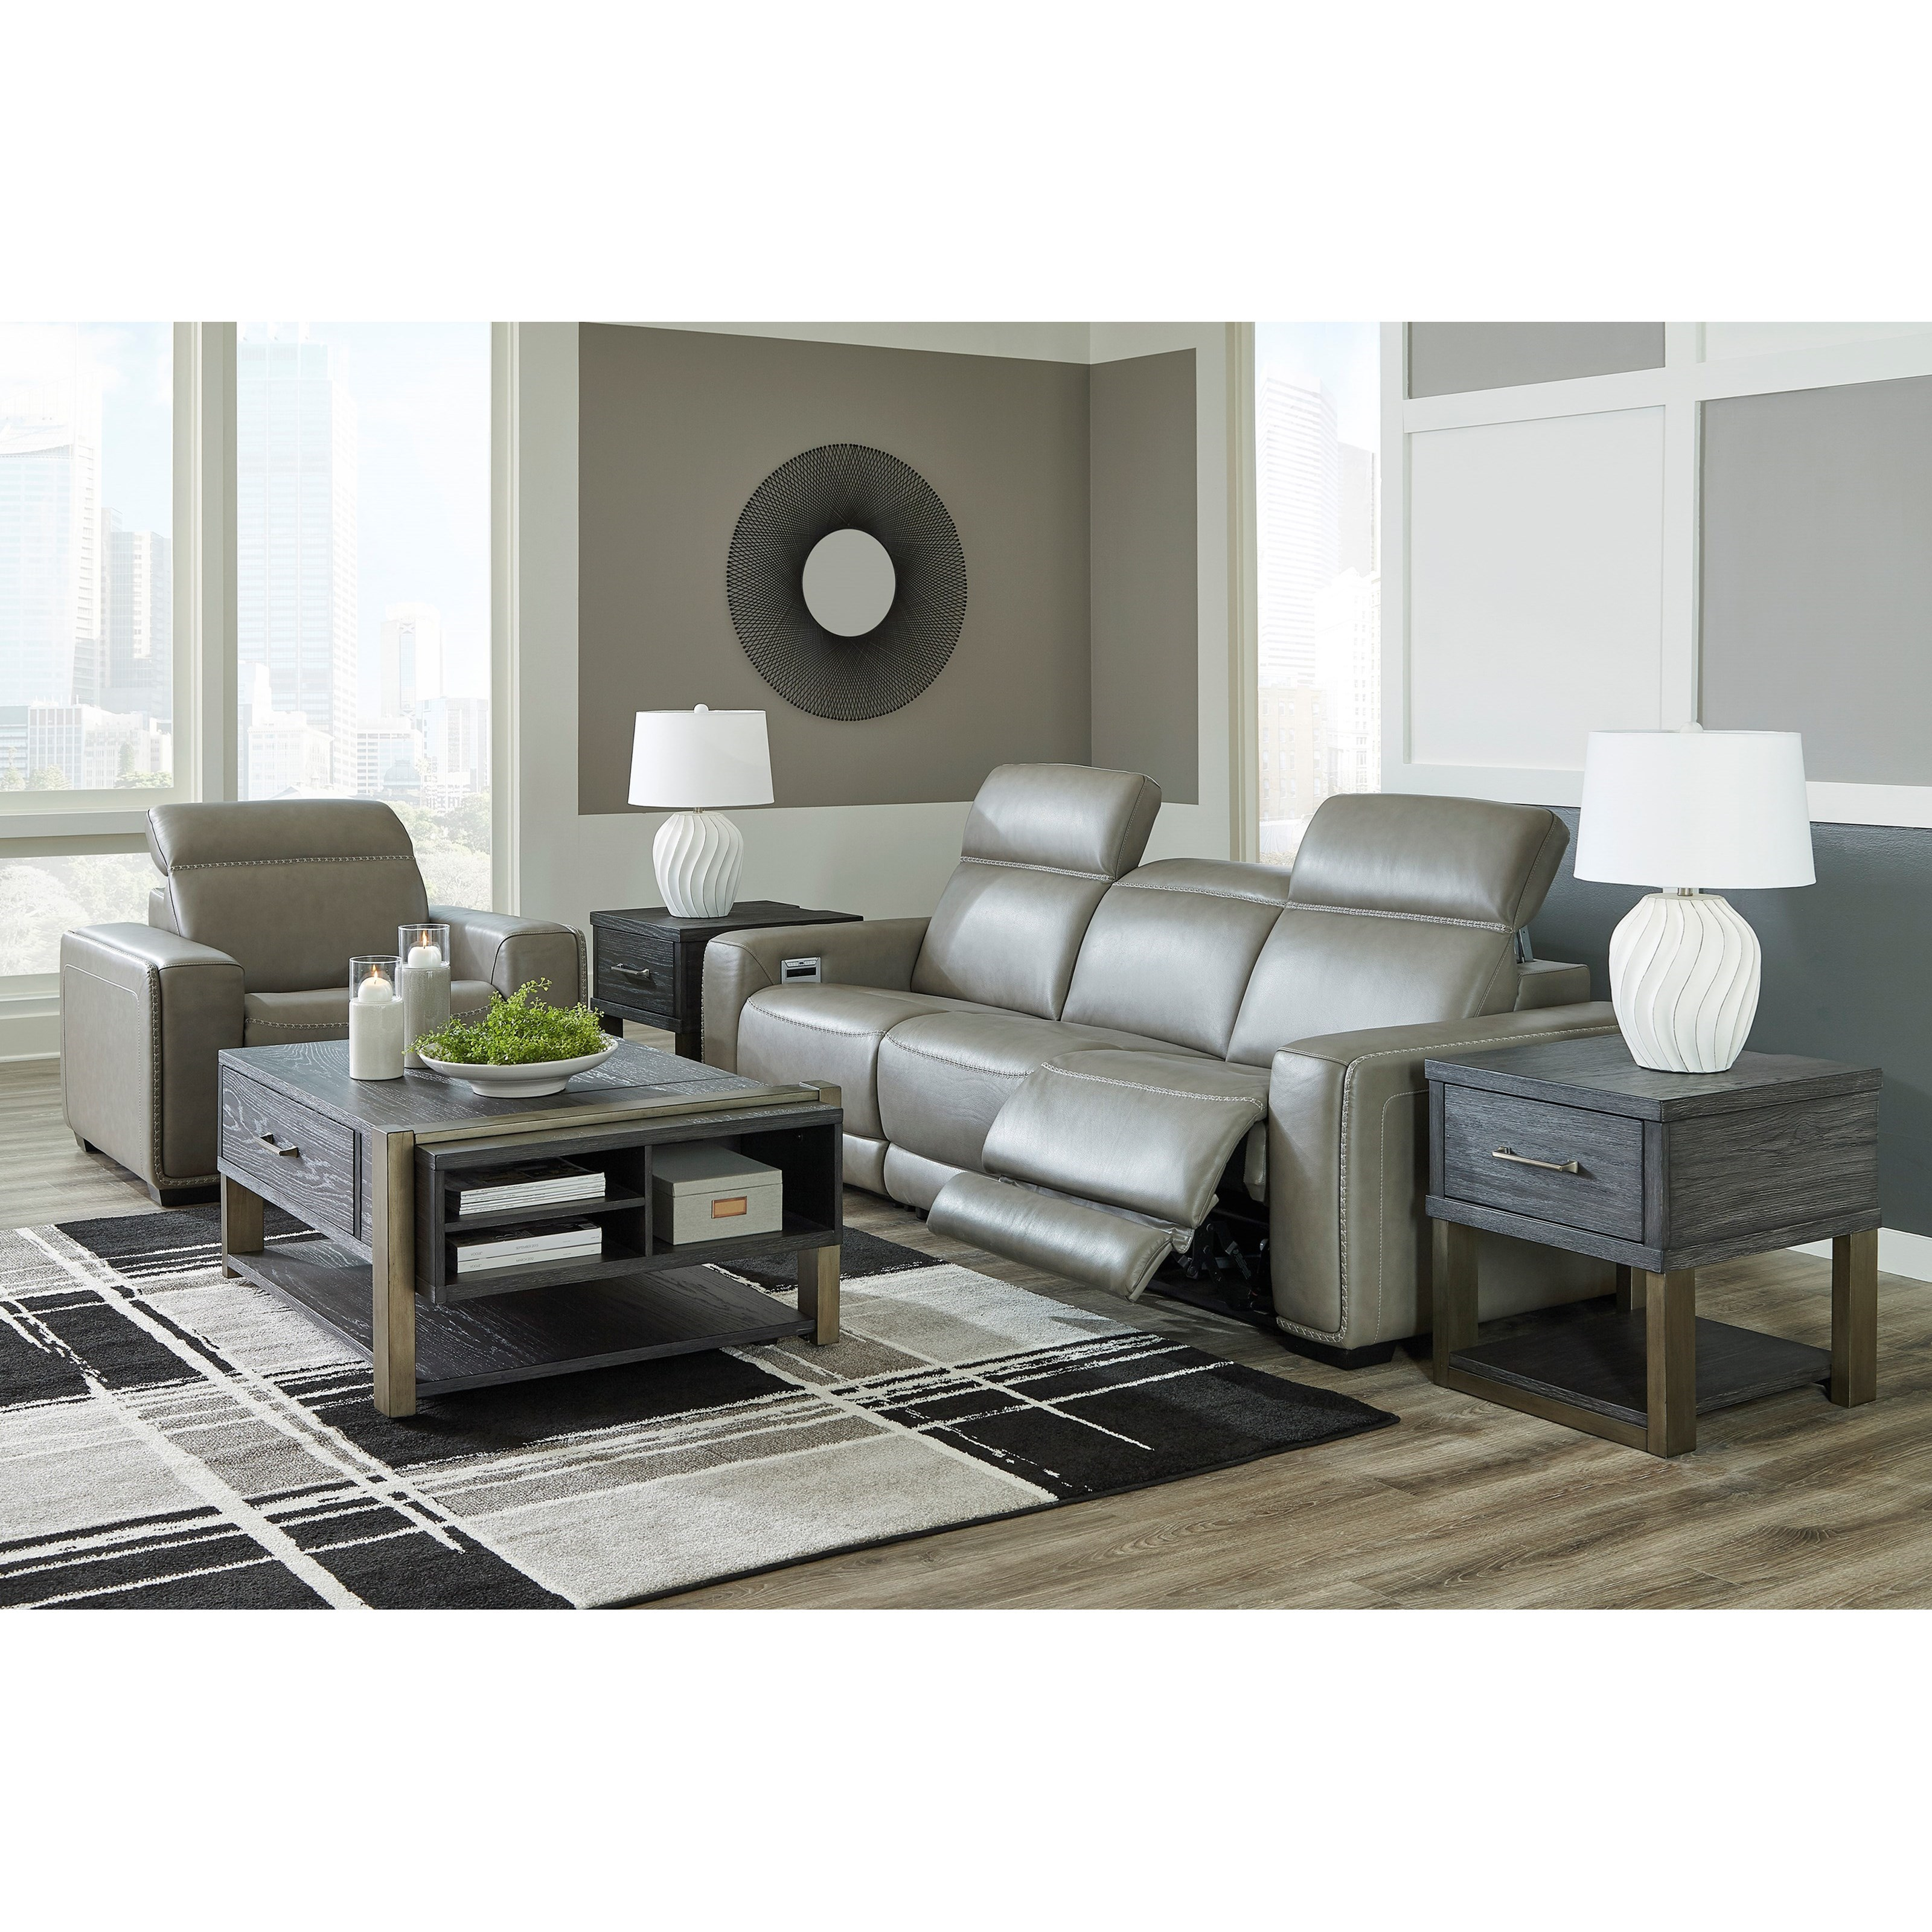 Correze Power Reclining Living Room Group by Signature Design by Ashley at Beck's Furniture